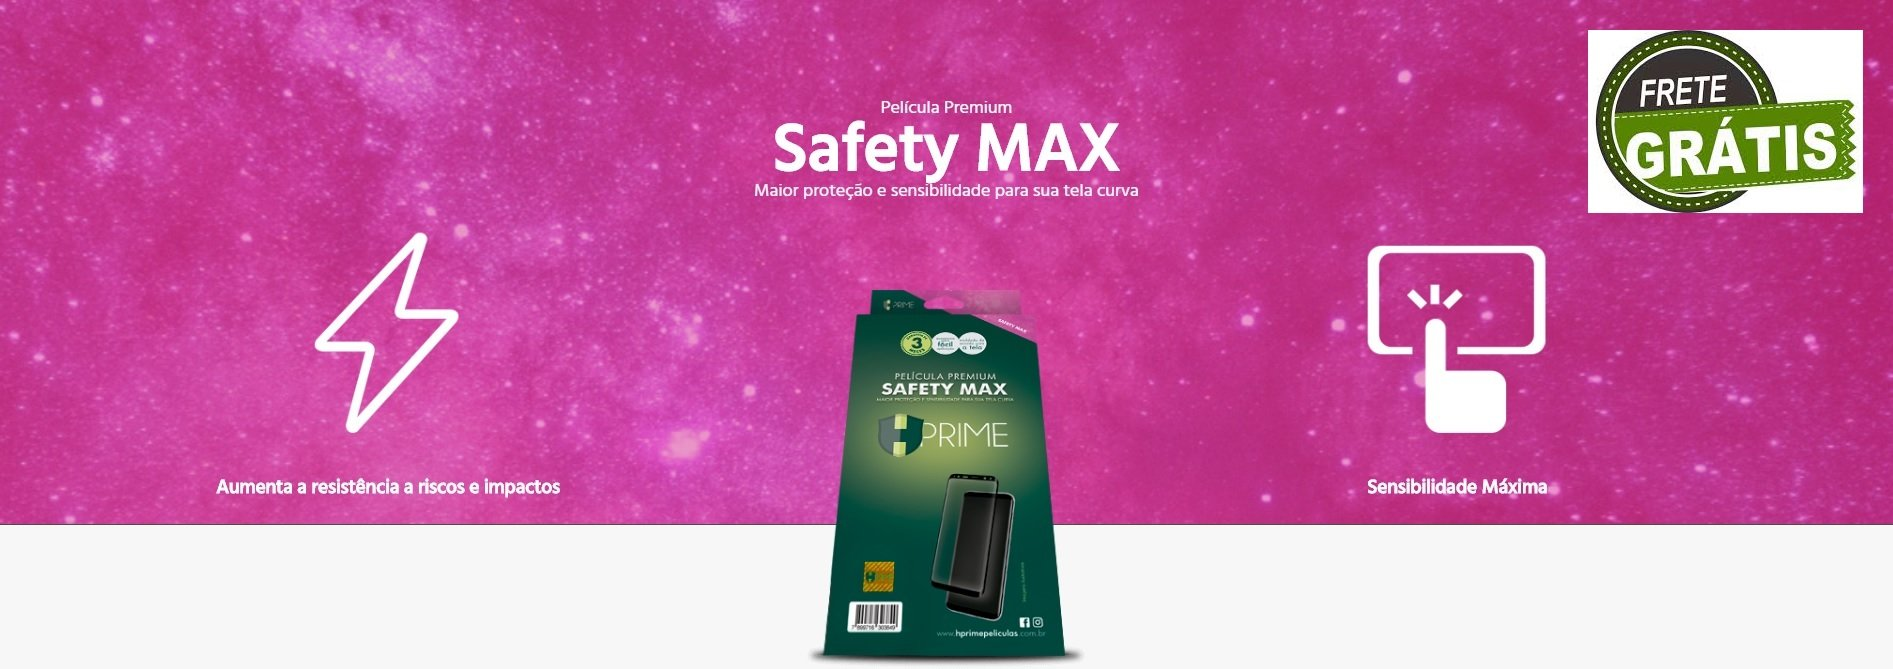 safety max